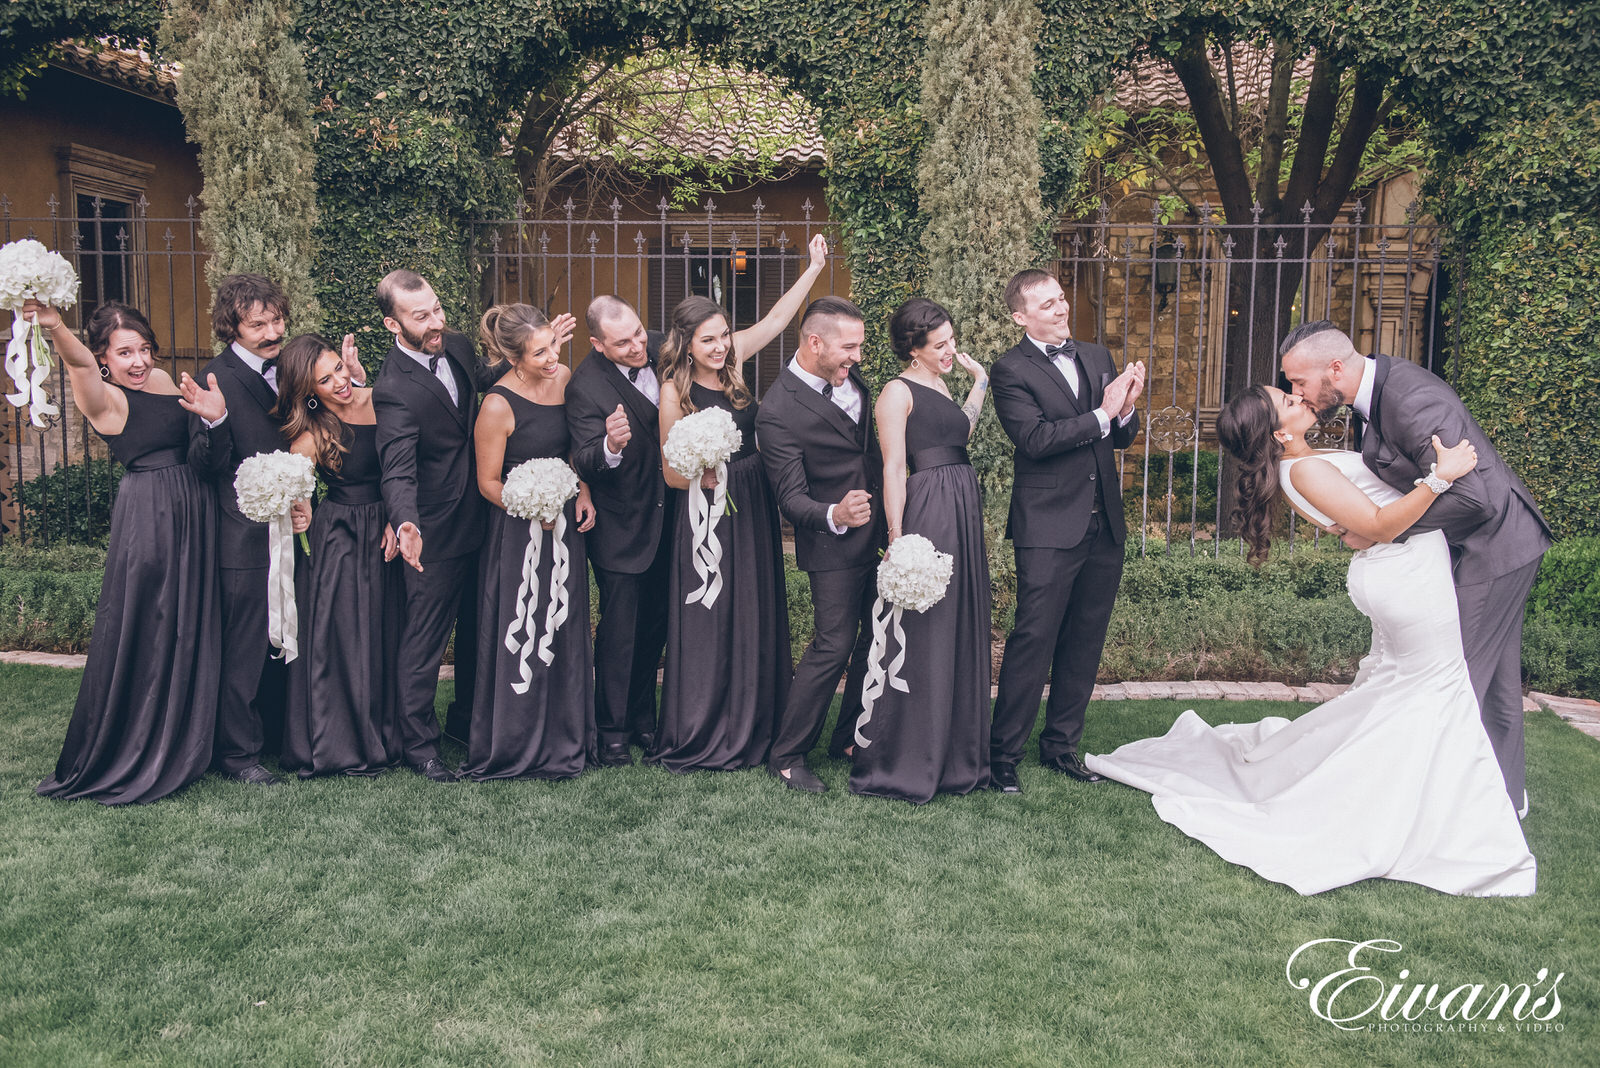 married man and woman kissing in front of a bridal party